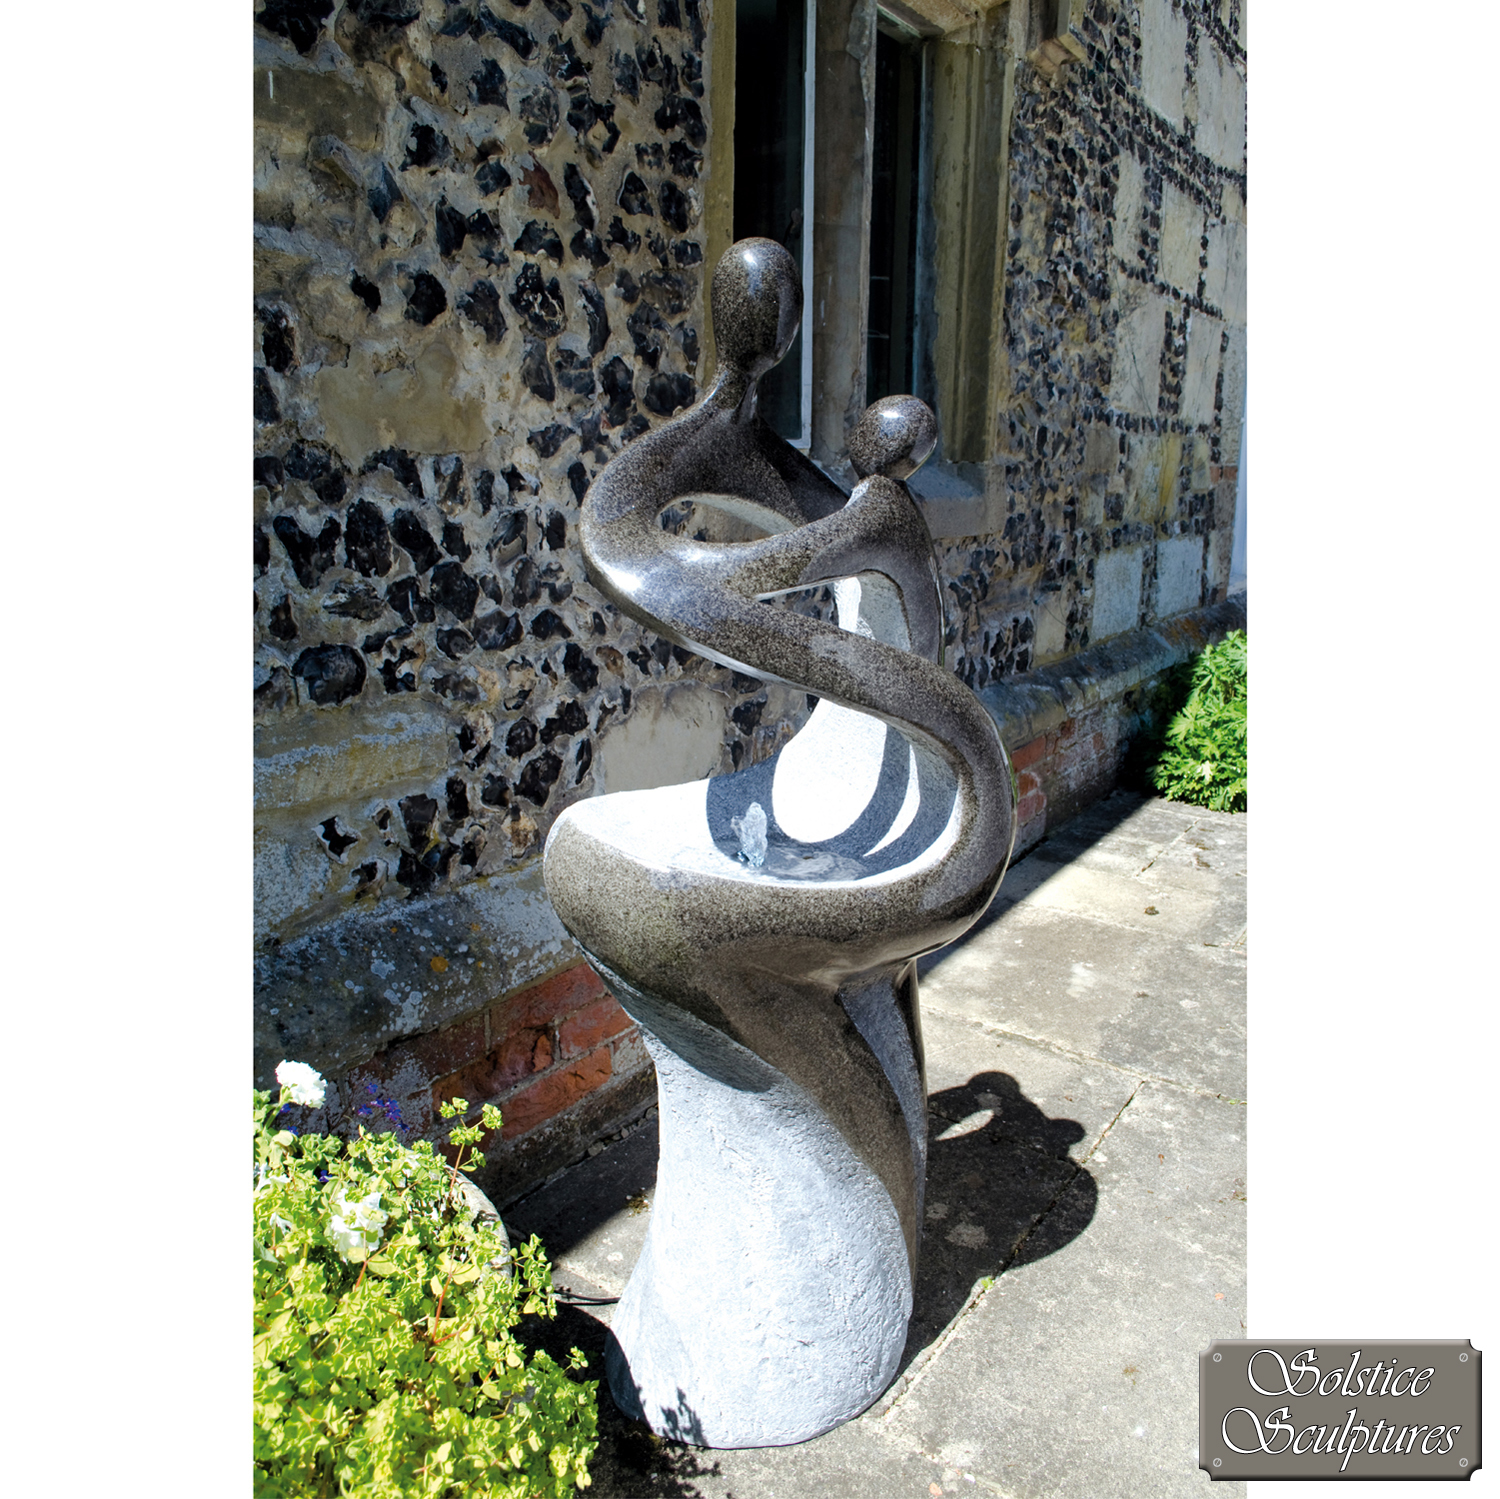 Inga self contained water feature